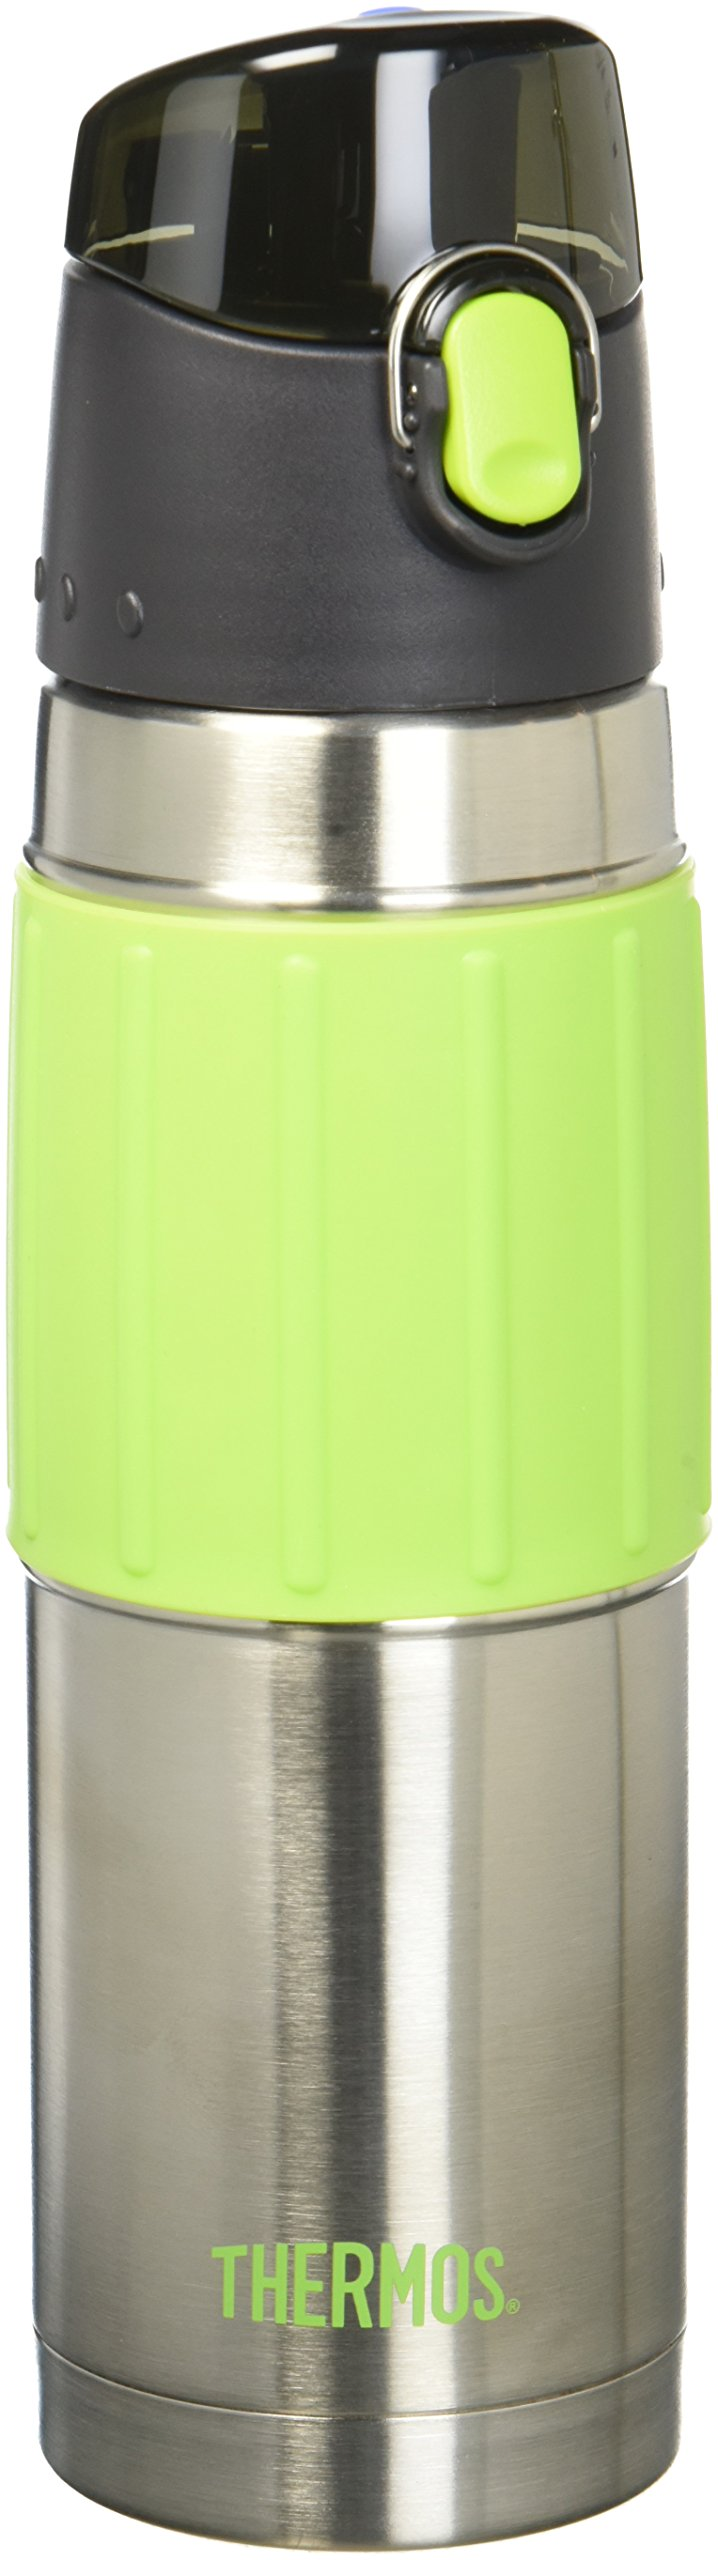 Thermos 18 Ounce Stainless Steel Hydration Bottle, Lime Green